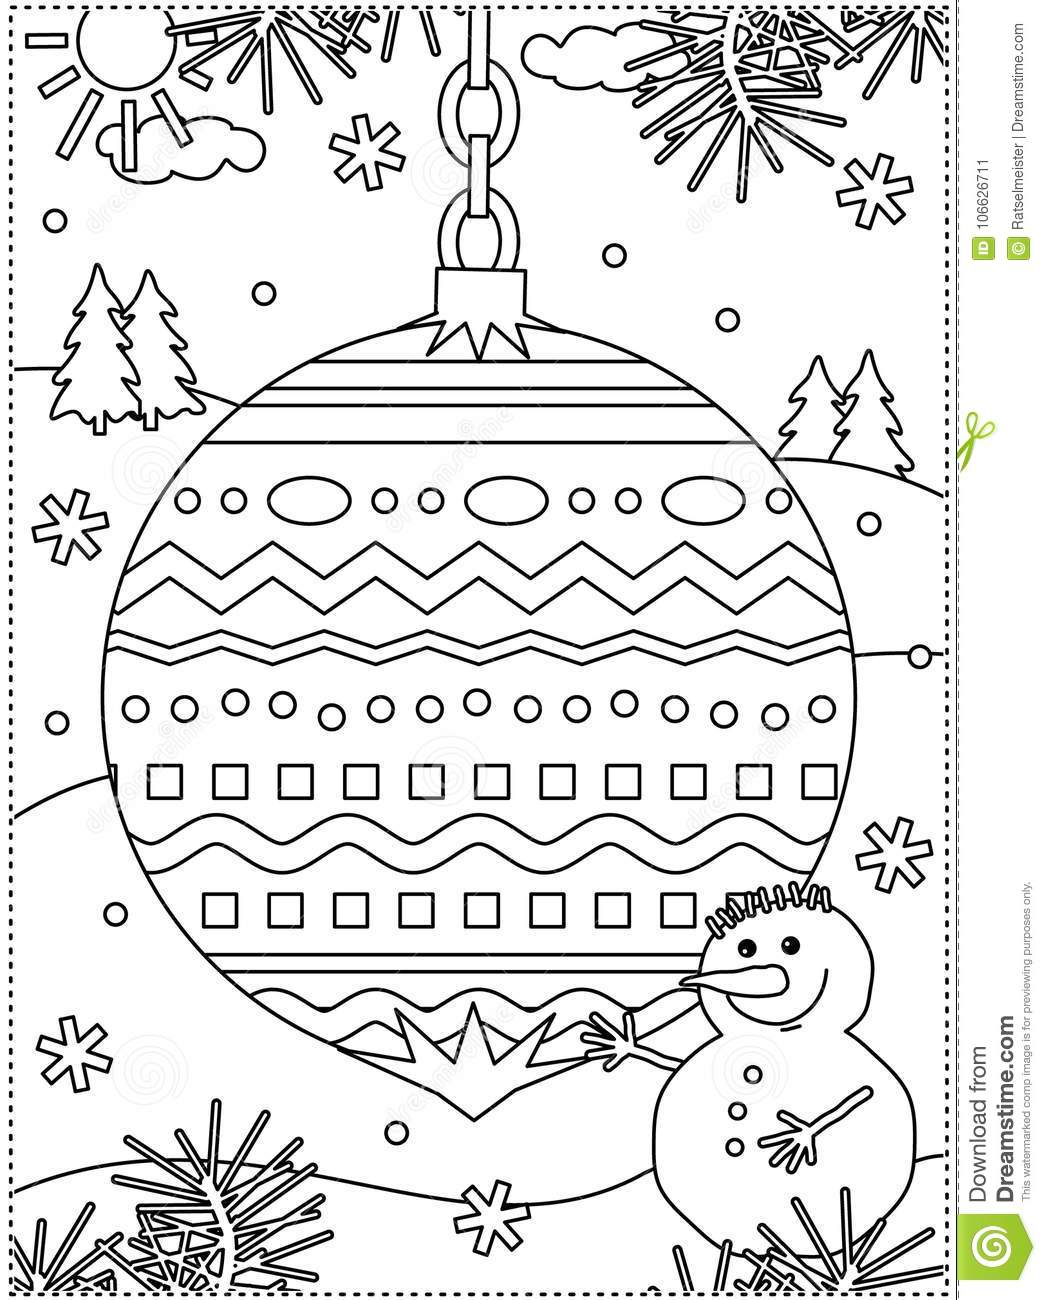 Winter Holidays Coloring Page With Decorated Ornament And Snowman ...